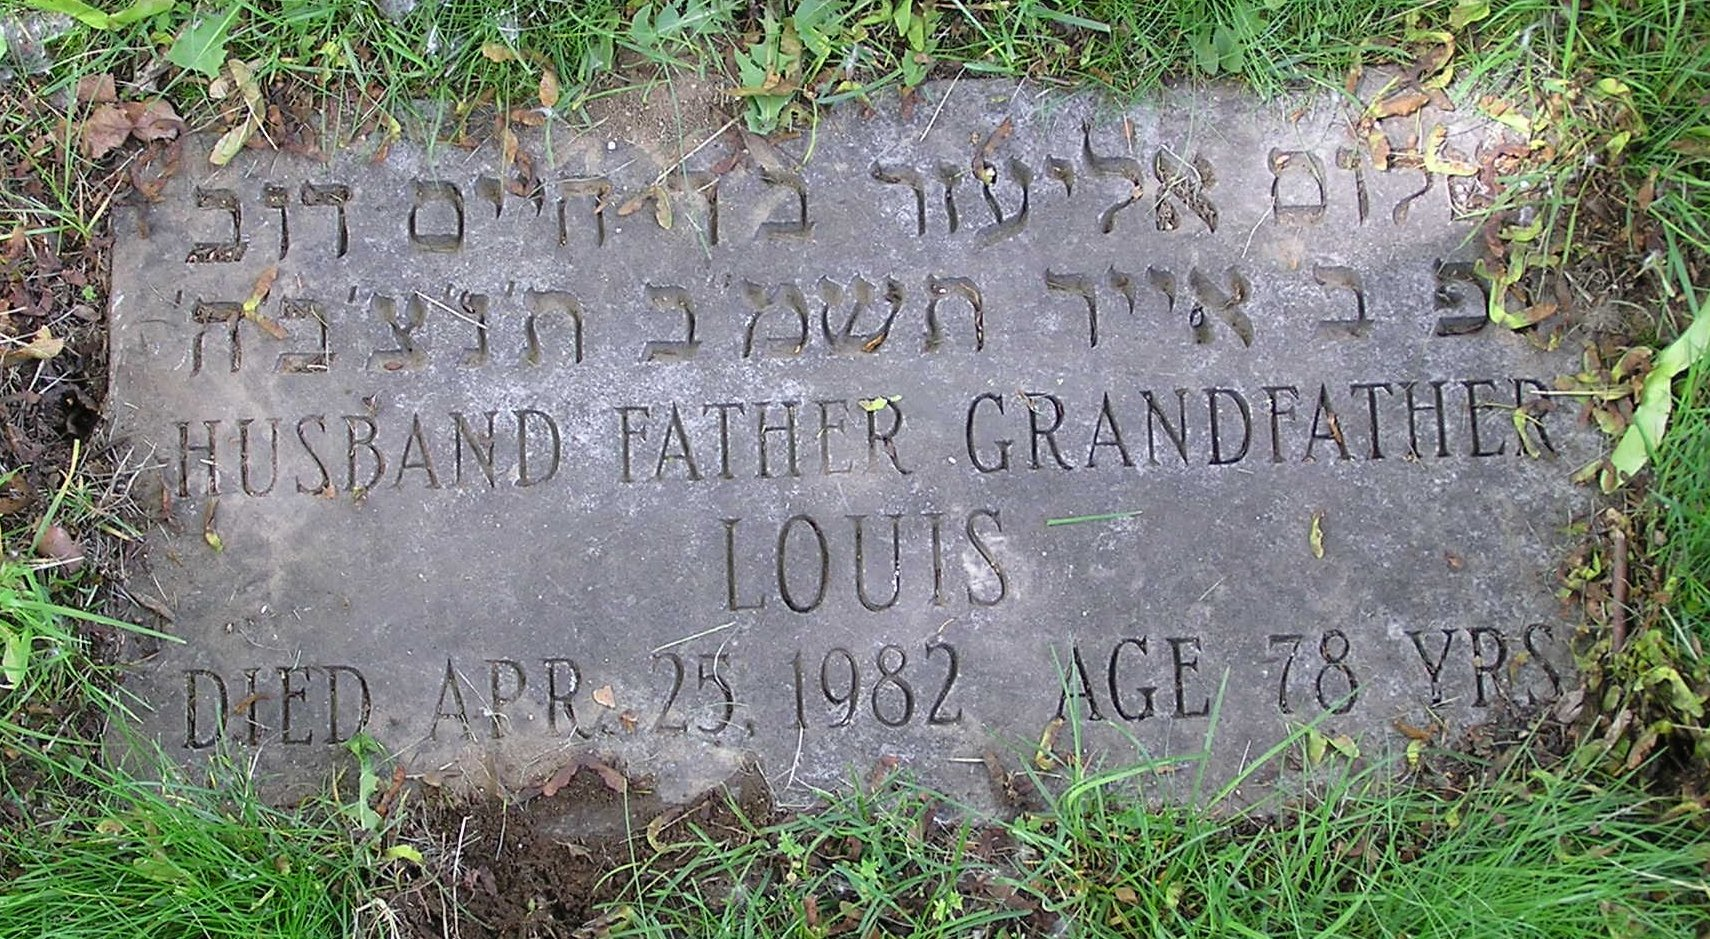 Louis Rutman (1903 - 1982) - Find A Grave Memorial